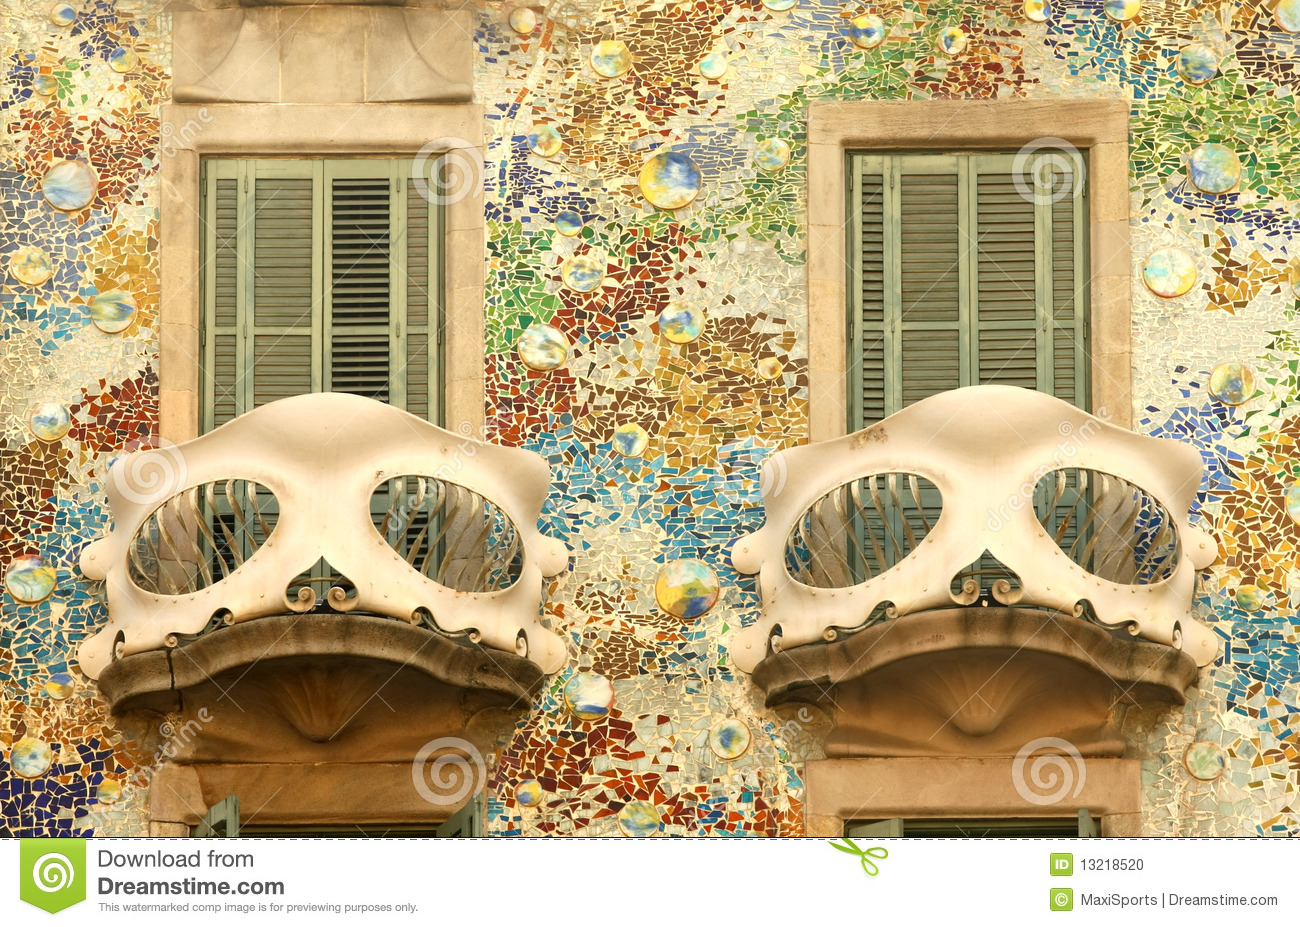 Balcony of Casa Batllo in Barcelona